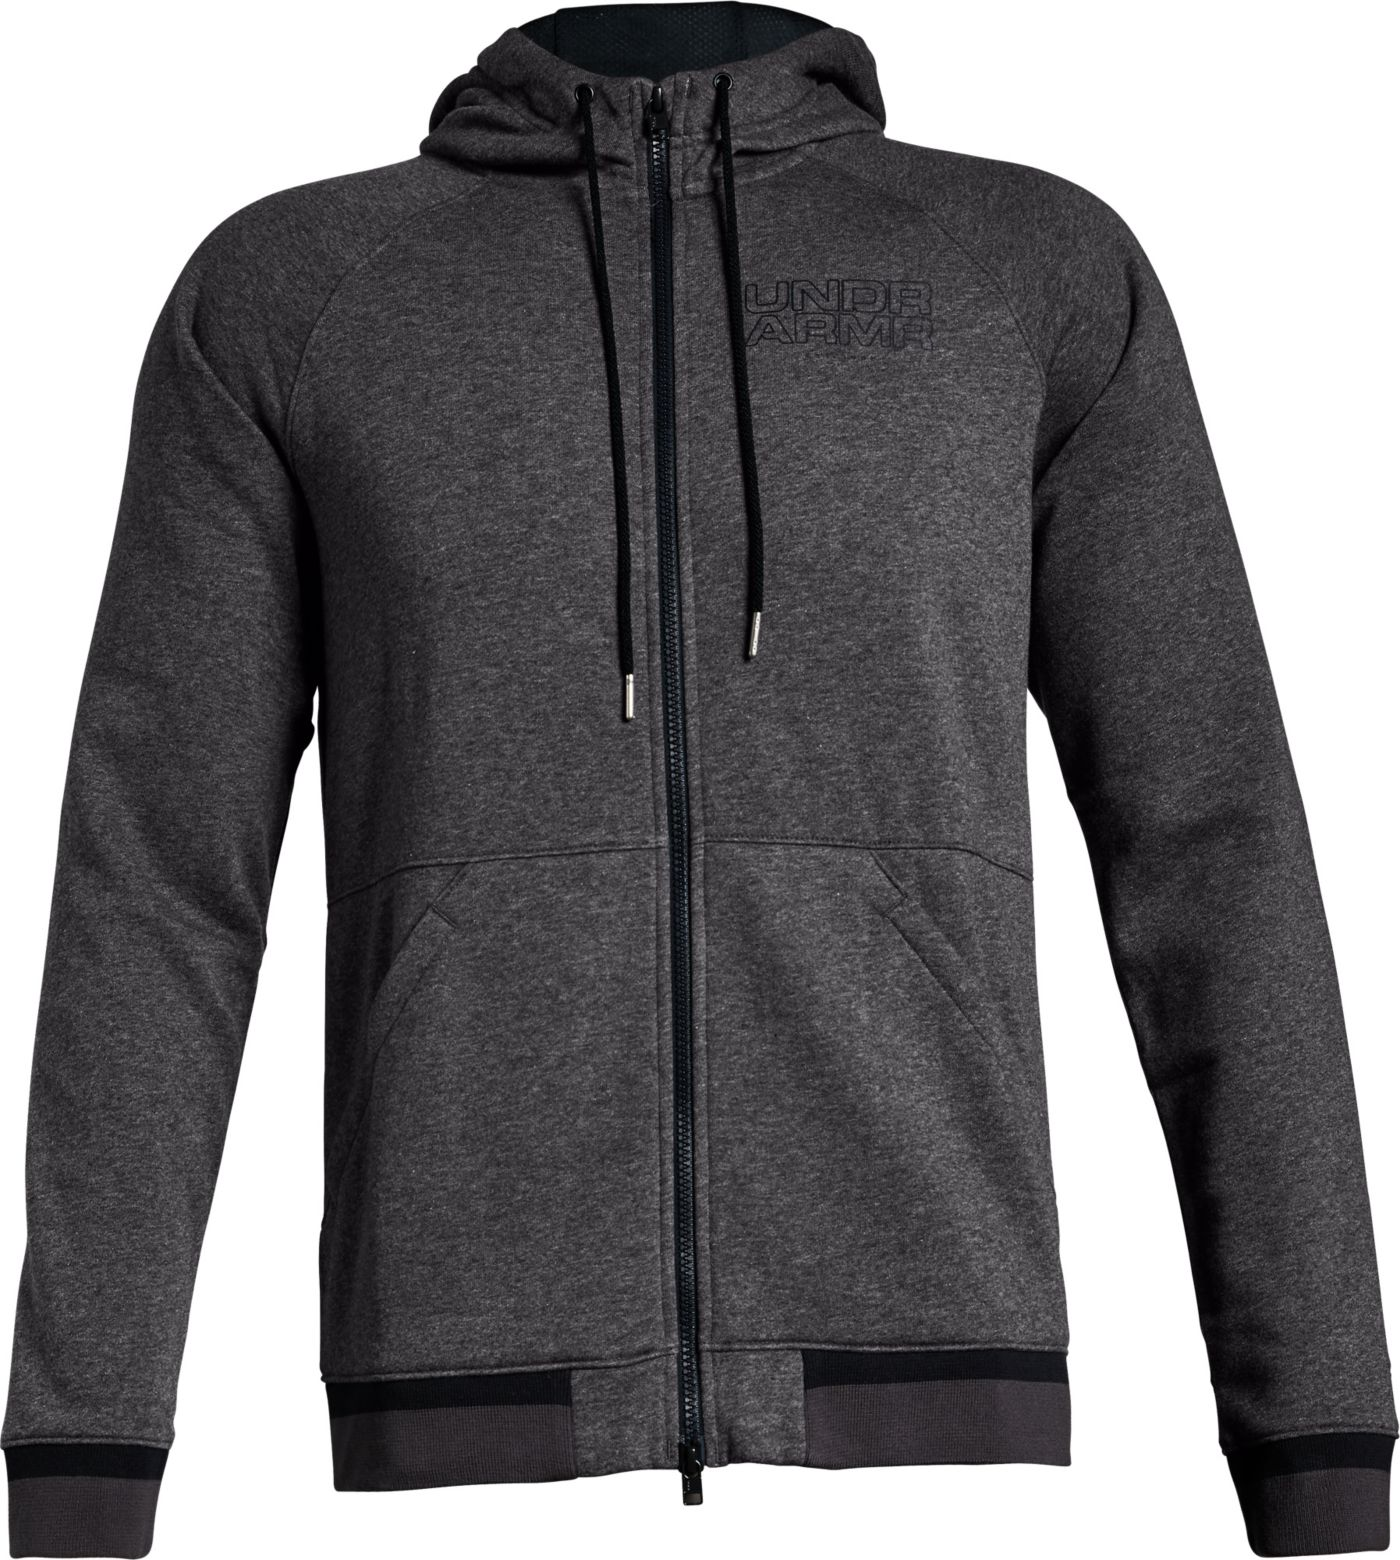 Under Armour Men's Baseline Fleece Full Zip Hoodie